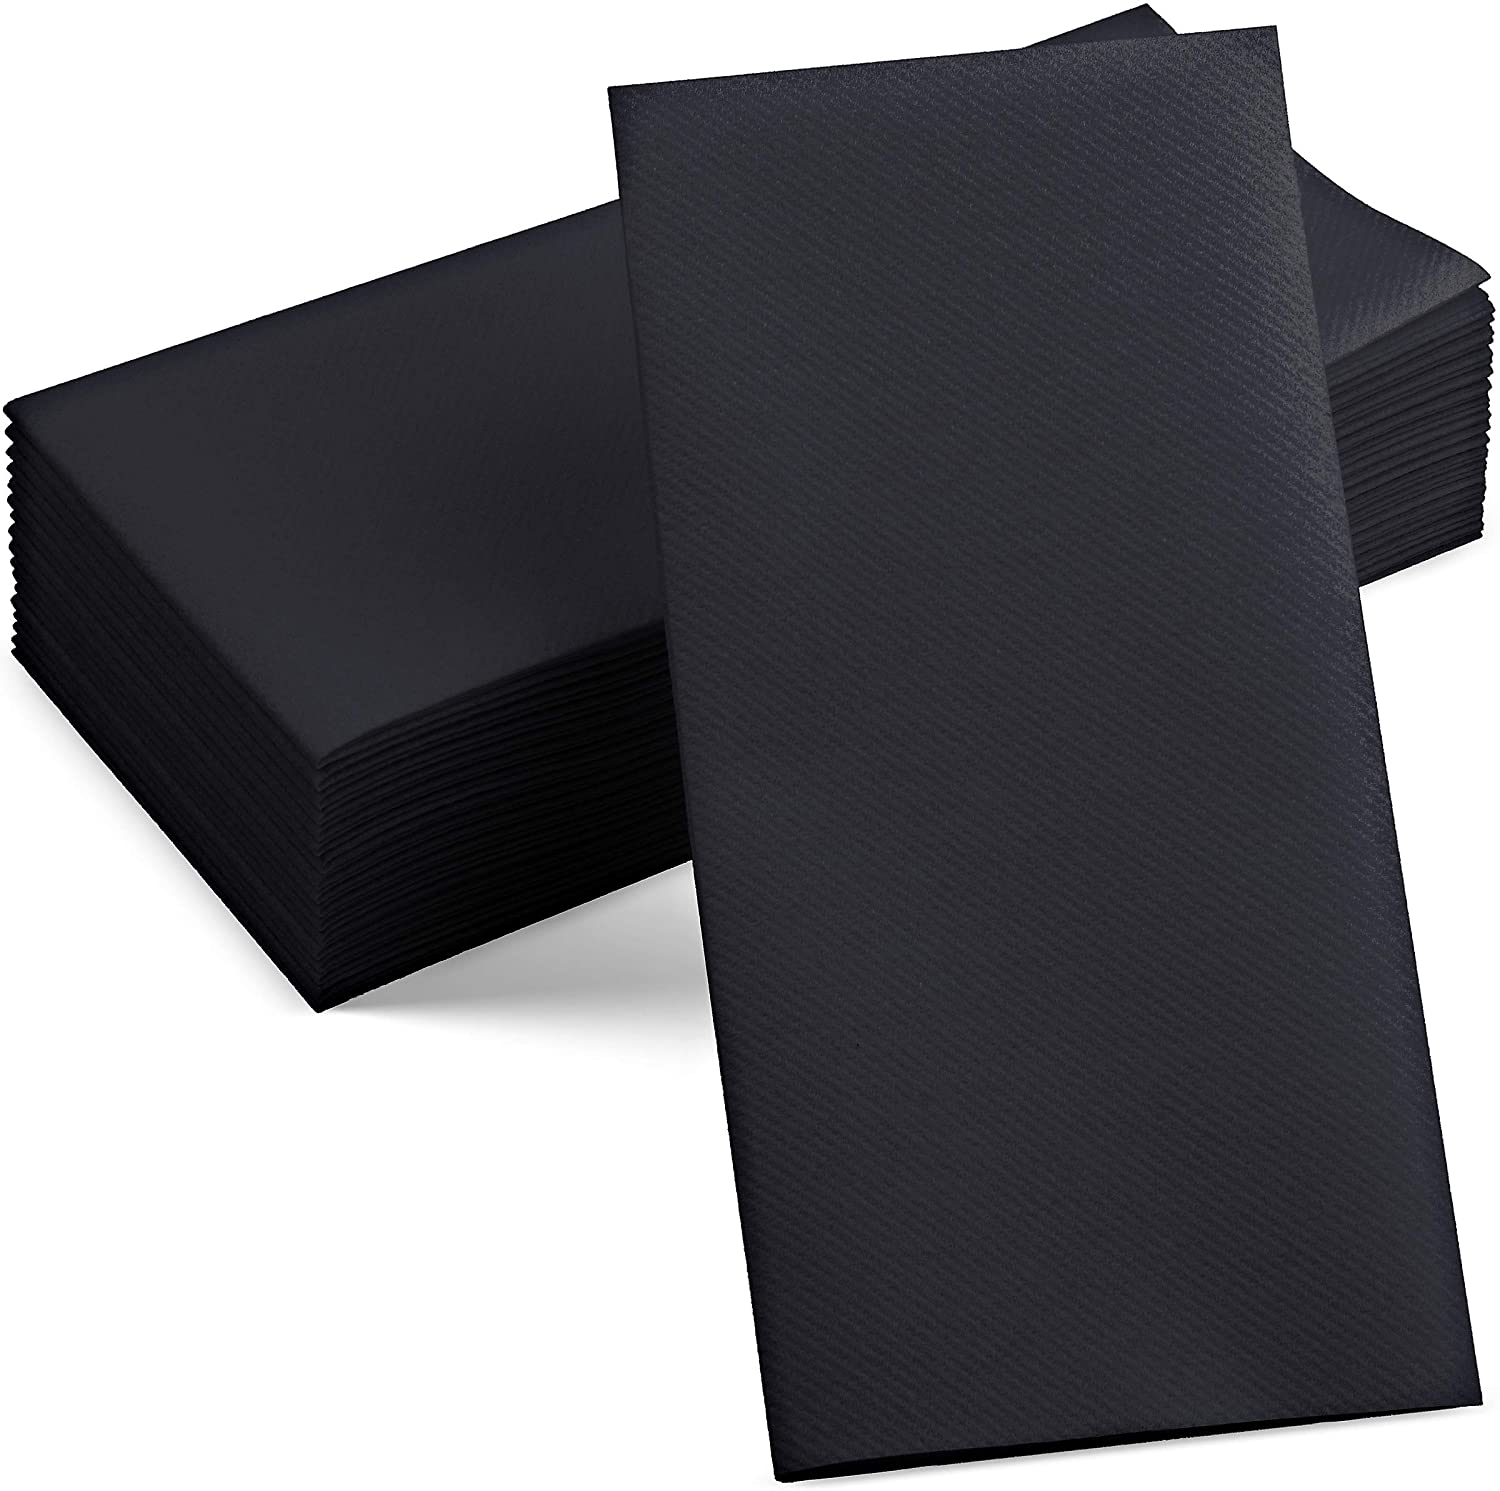 100 Linen-Feel Black Paper Napkins - Decorative Cloth-Like Black Dinner Napkins - Soft And Absorbent. For Kitchen, Party, Wedding, Bathroom Or Any Occasion. (Pack of 100)